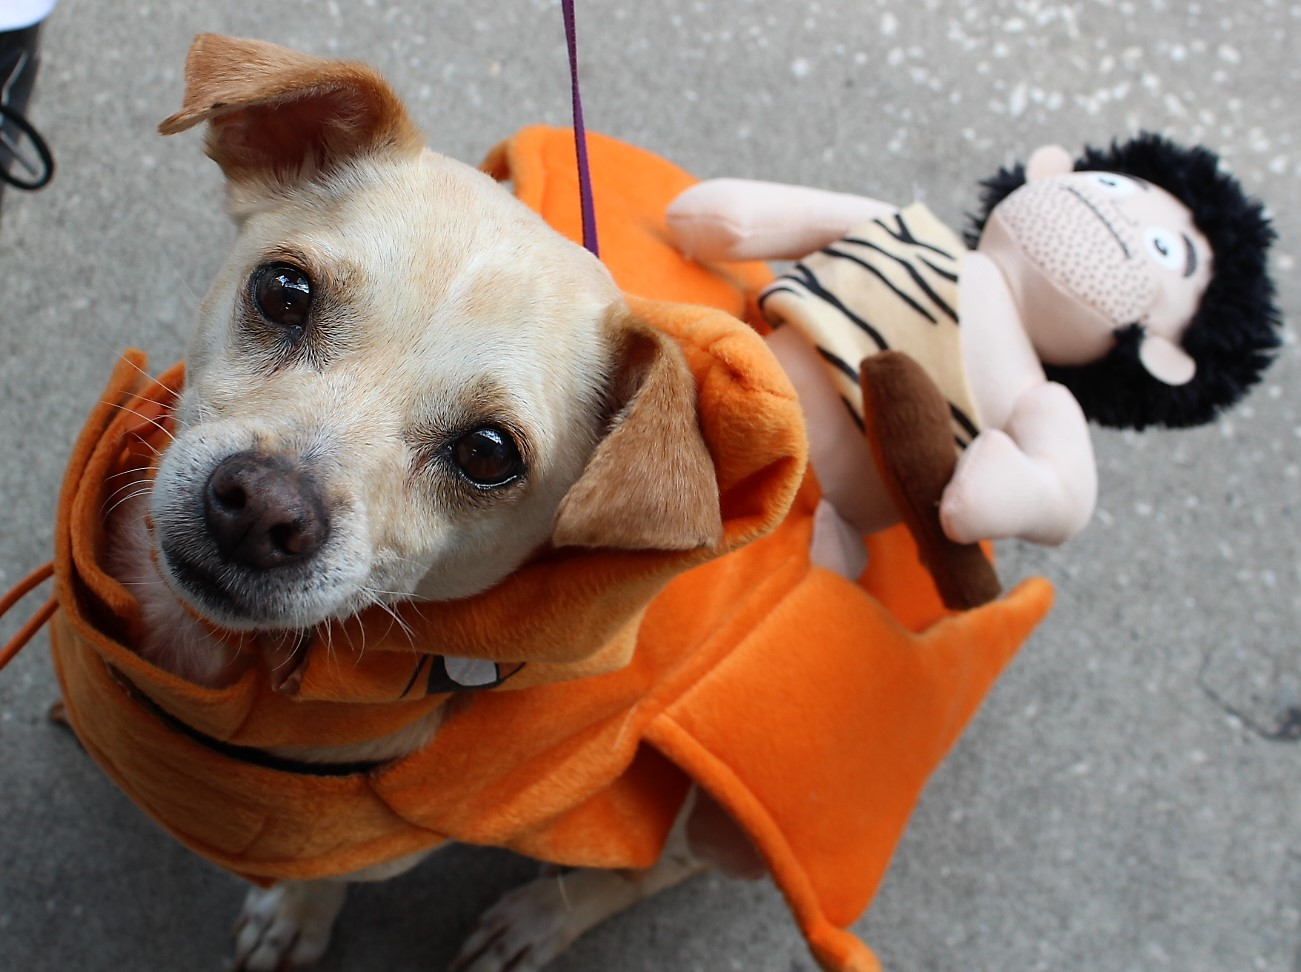 A small brown dog in orange costume looking at the camera